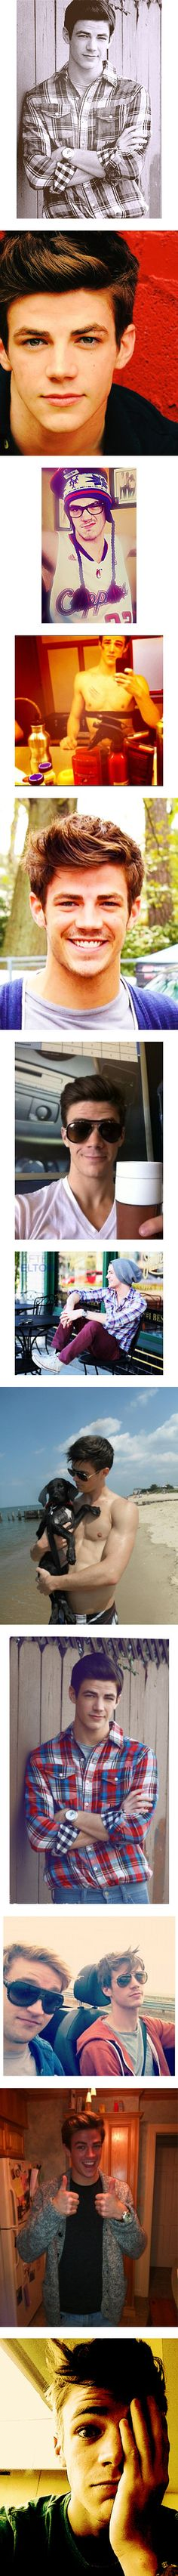 """grant gustin"" by izzy-xoxo ❤ liked on Polyvore"